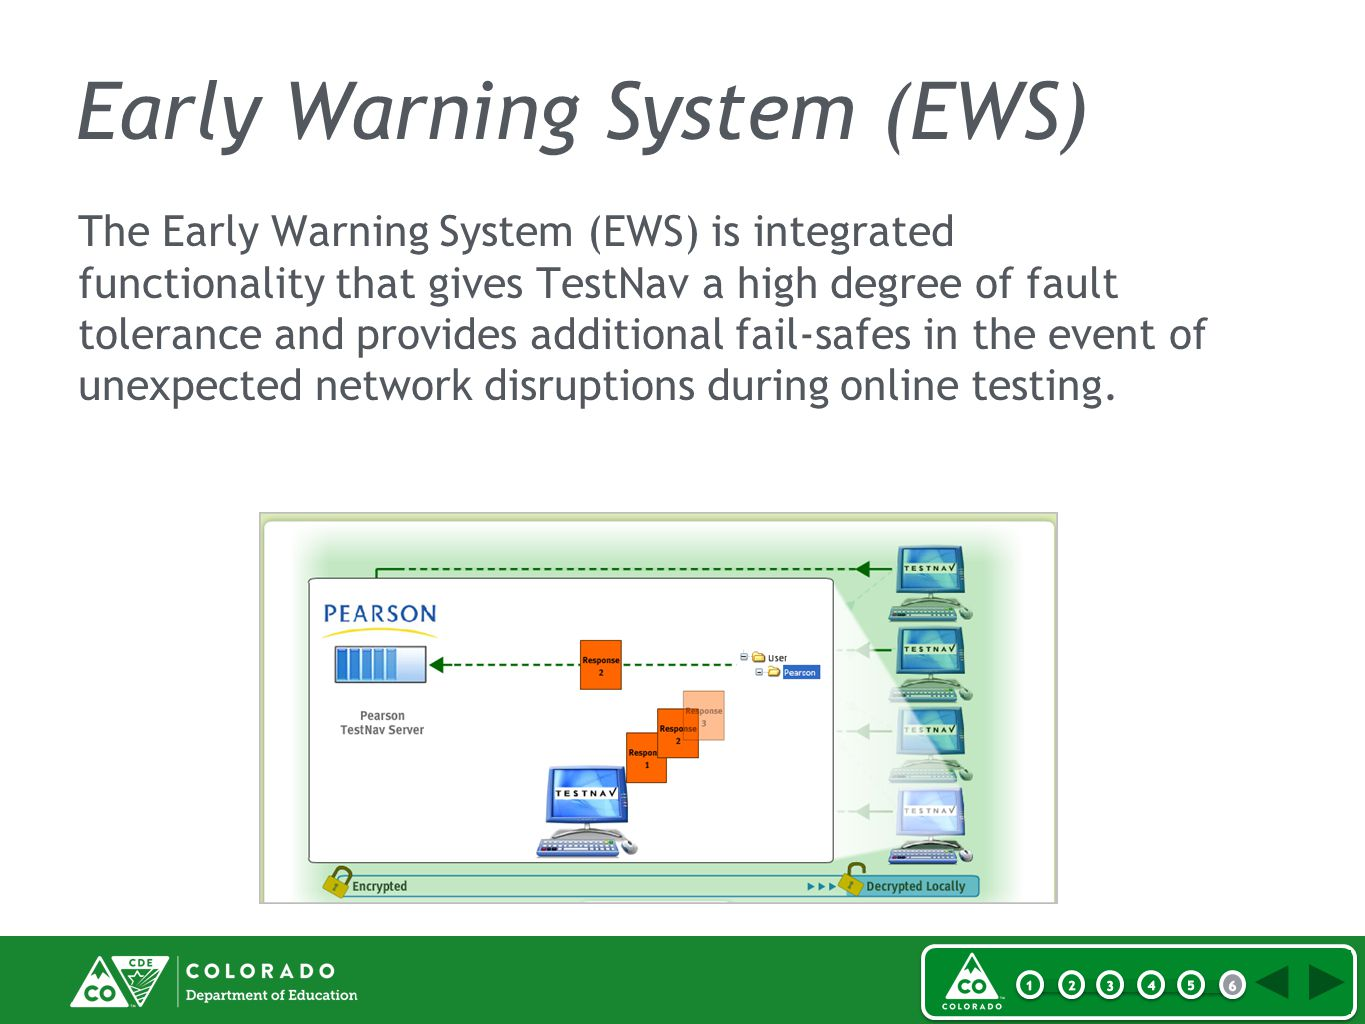 Early Warning System (EWS) The Early Warning System (EWS) is integrated functionality that gives TestNav a high degree of fault tolerance and provides additional fail-safes in the event of unexpected network disruptions during online testing.